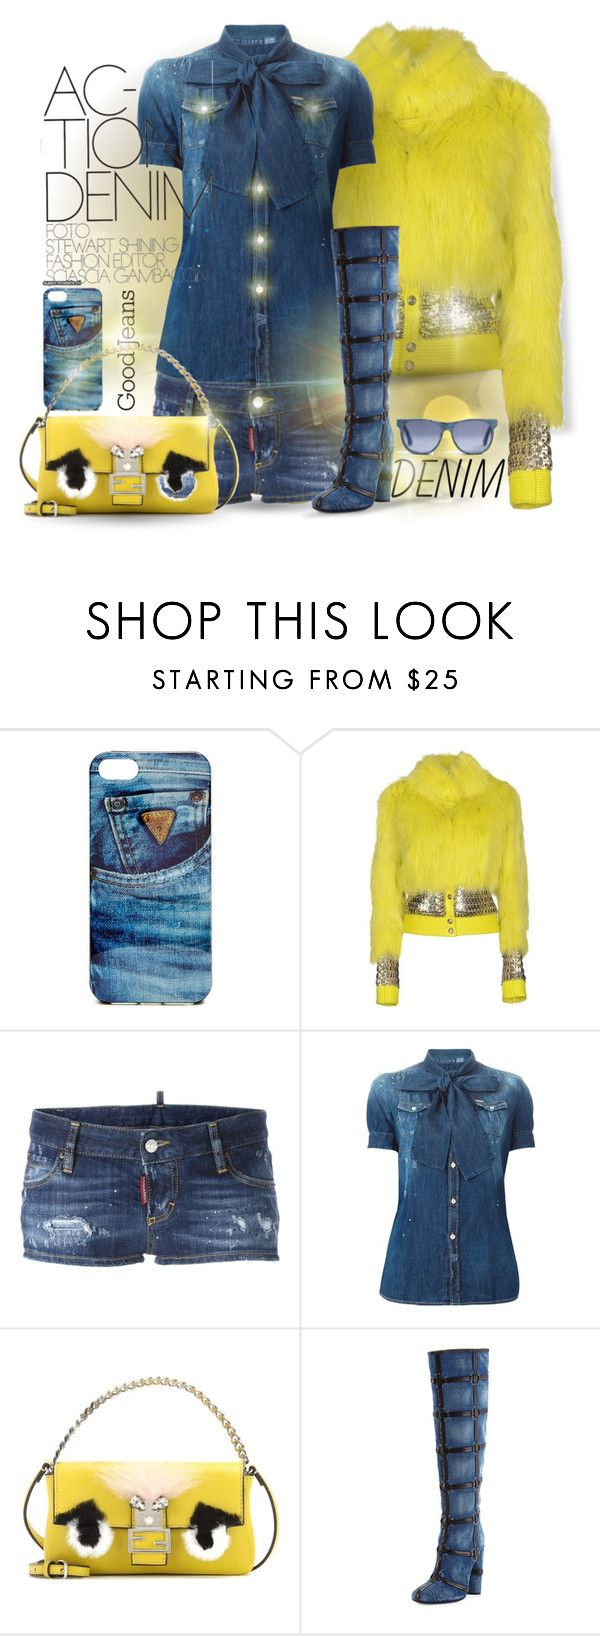 Distressed Denim by falticska-cerasella on Polyvore featuring moda, Dsquared2, Versus, Tom Ford, Fendi, GUESS, women's clothing, women's fashion, women and female